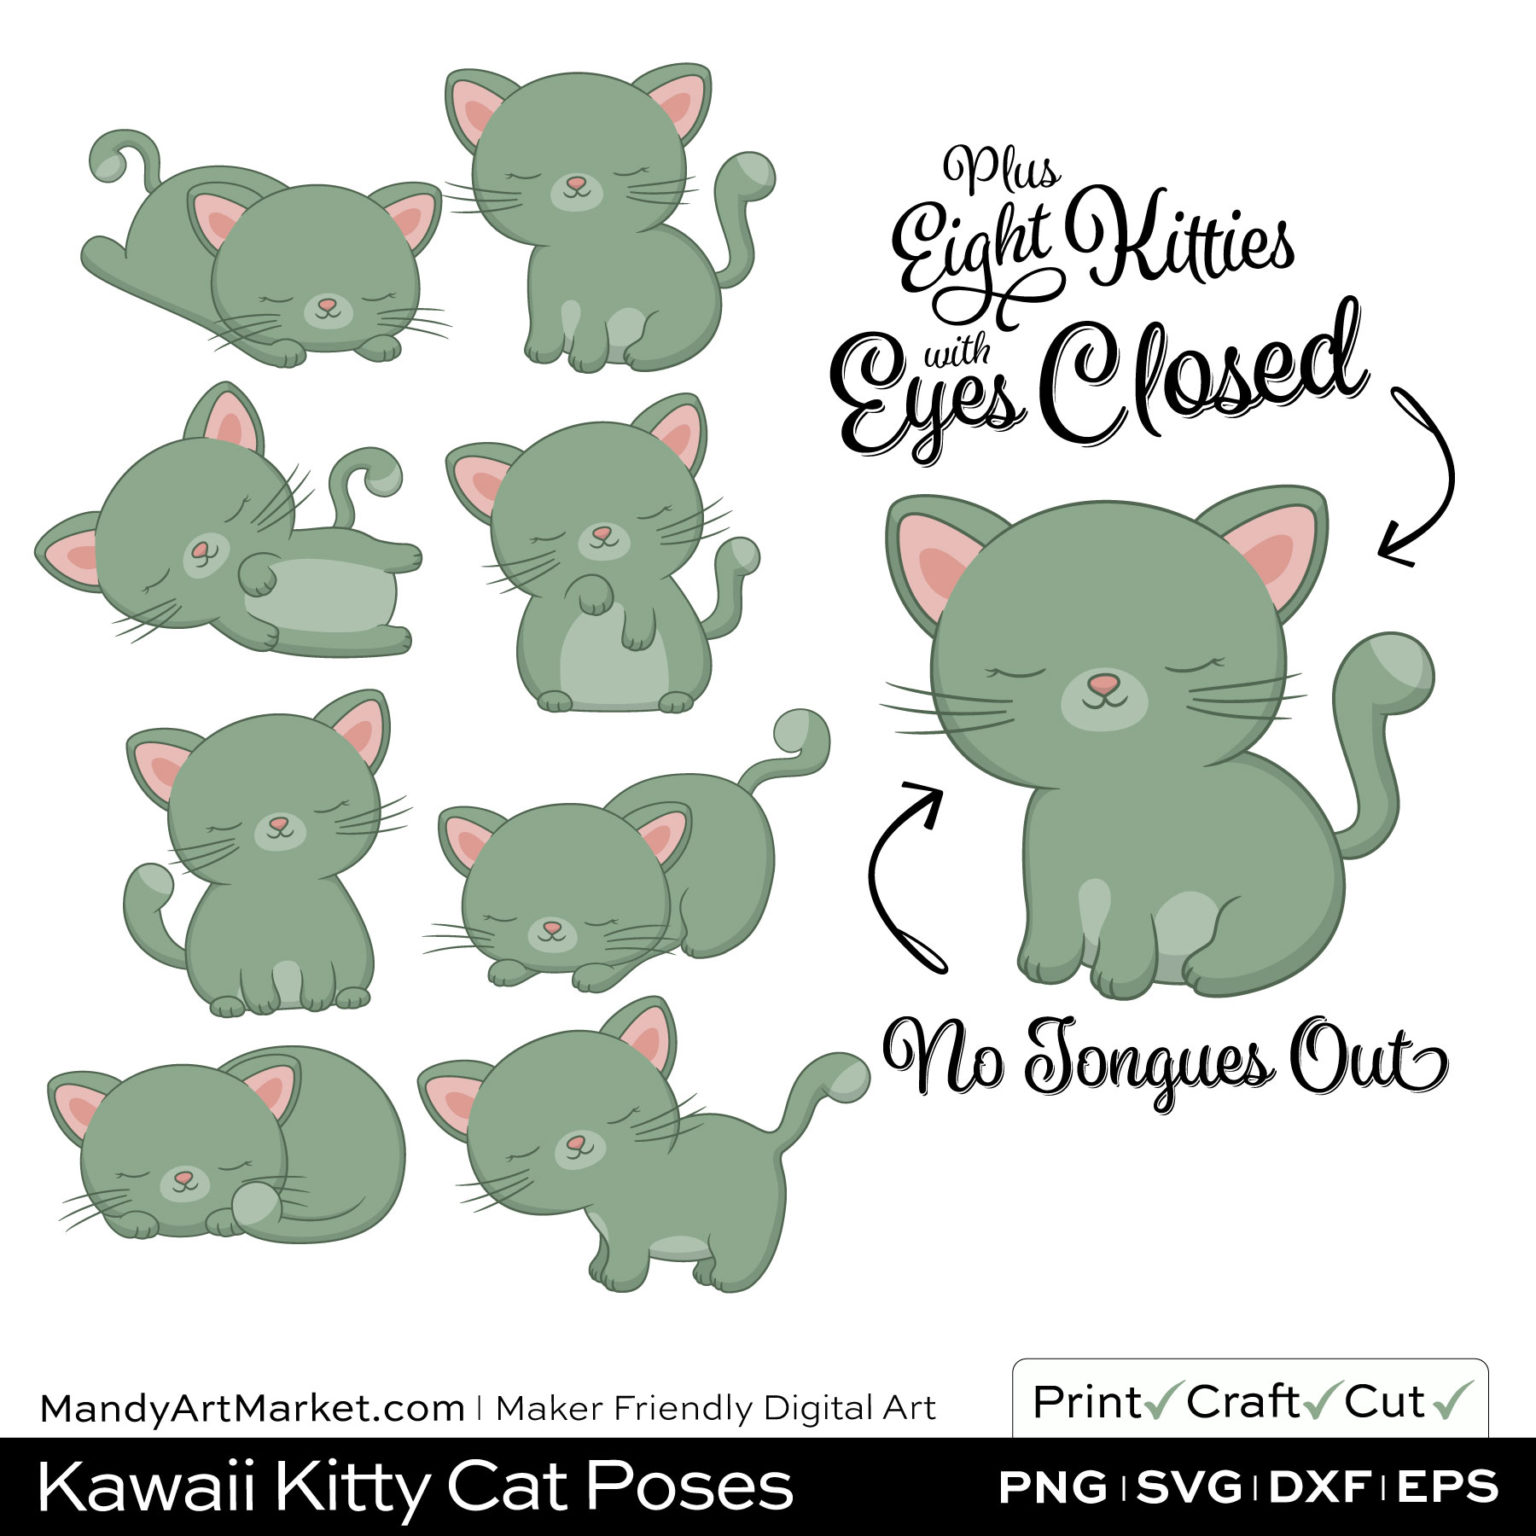 Laurel Green Kawaii Kitty Cat Poses Clipart PNGs Included in Download